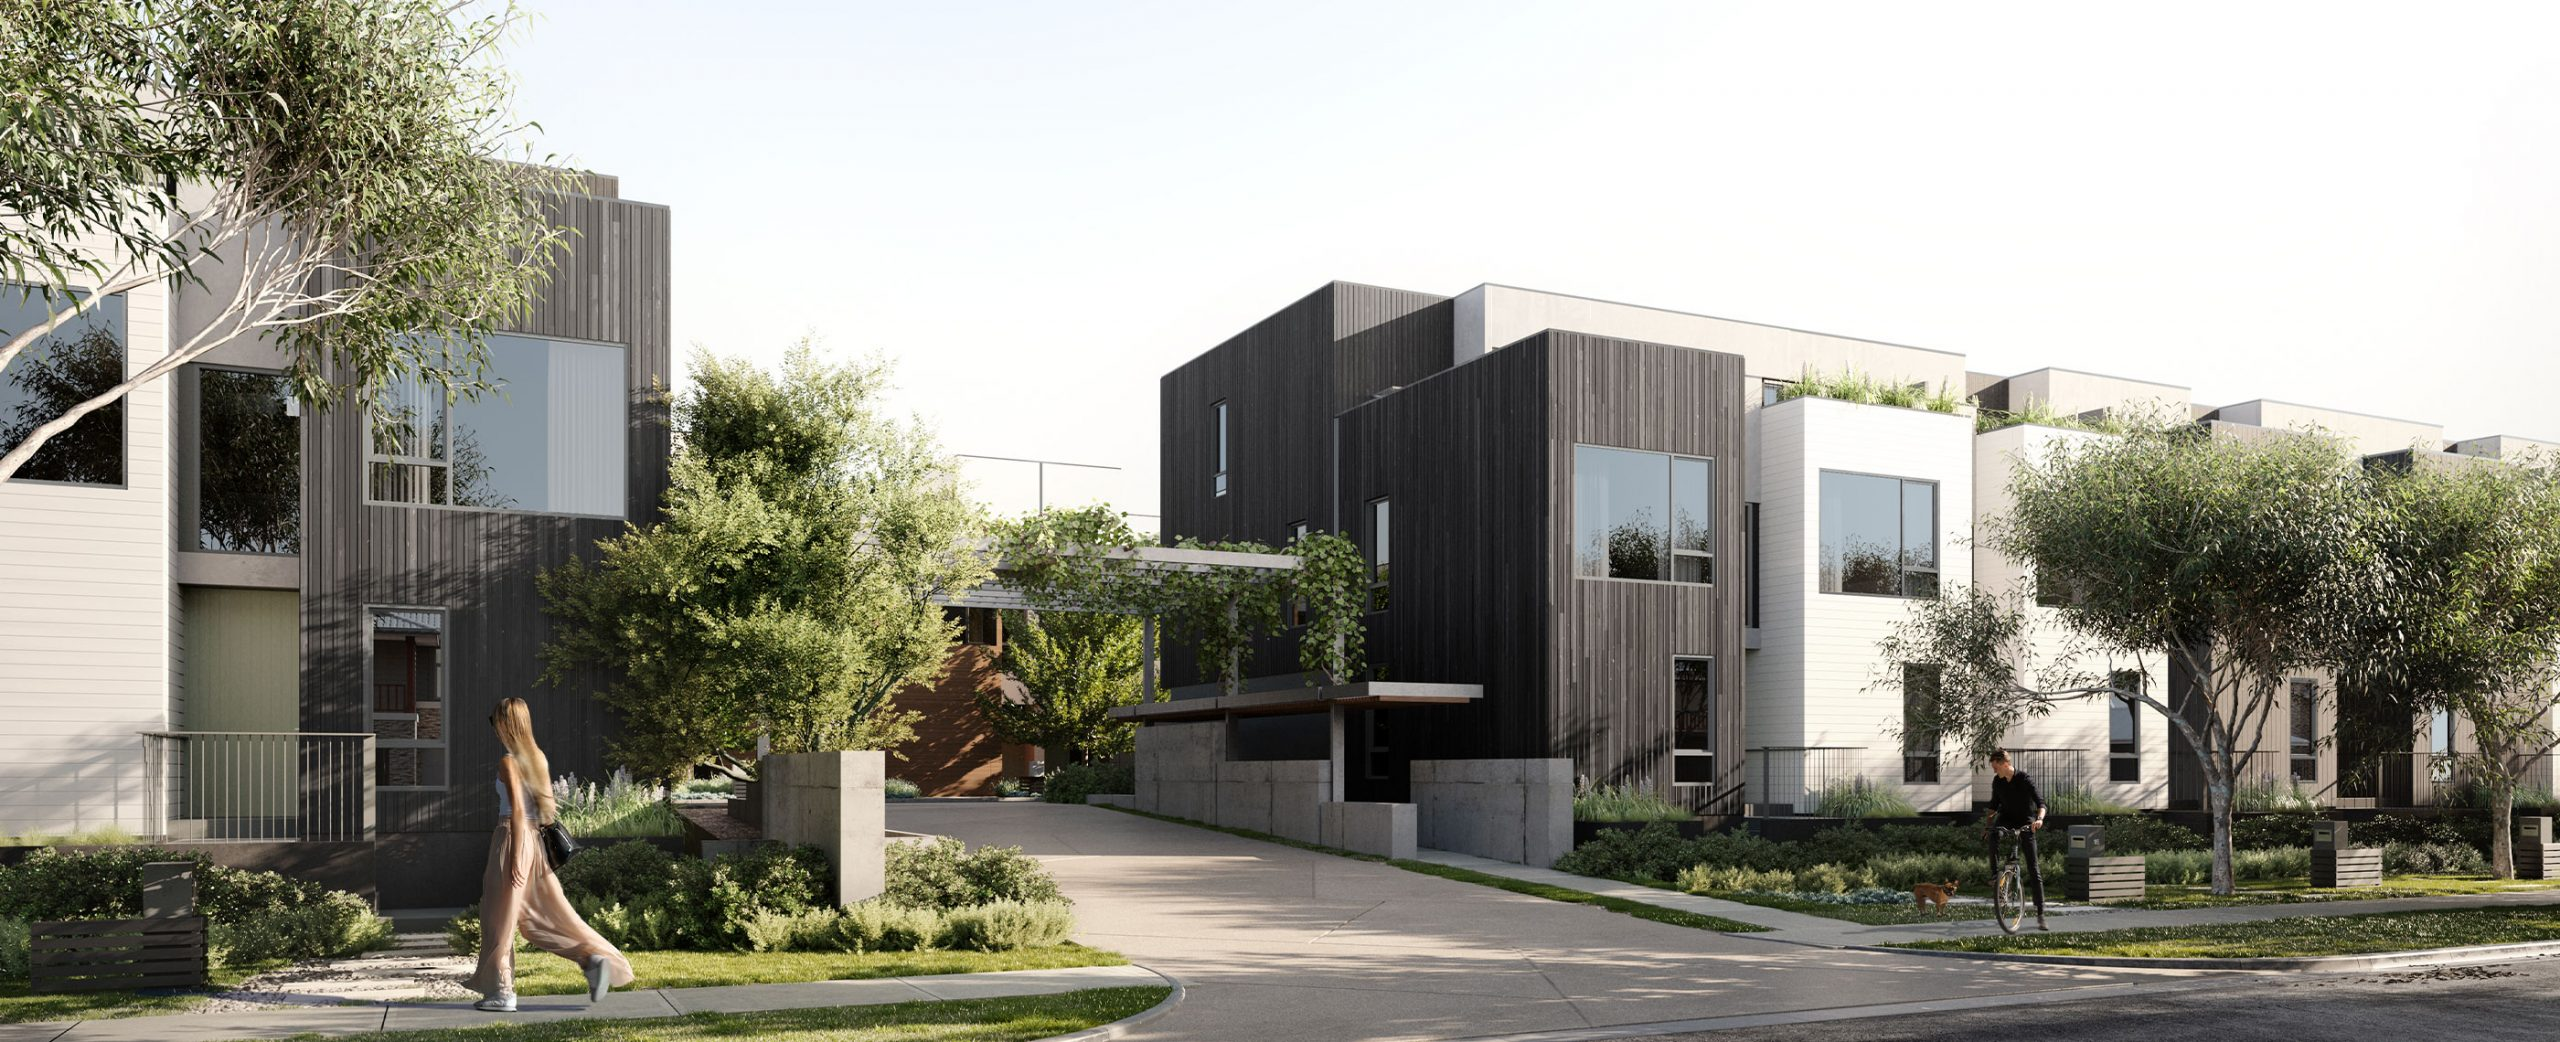 Port Lane Rothelowman Architecture project